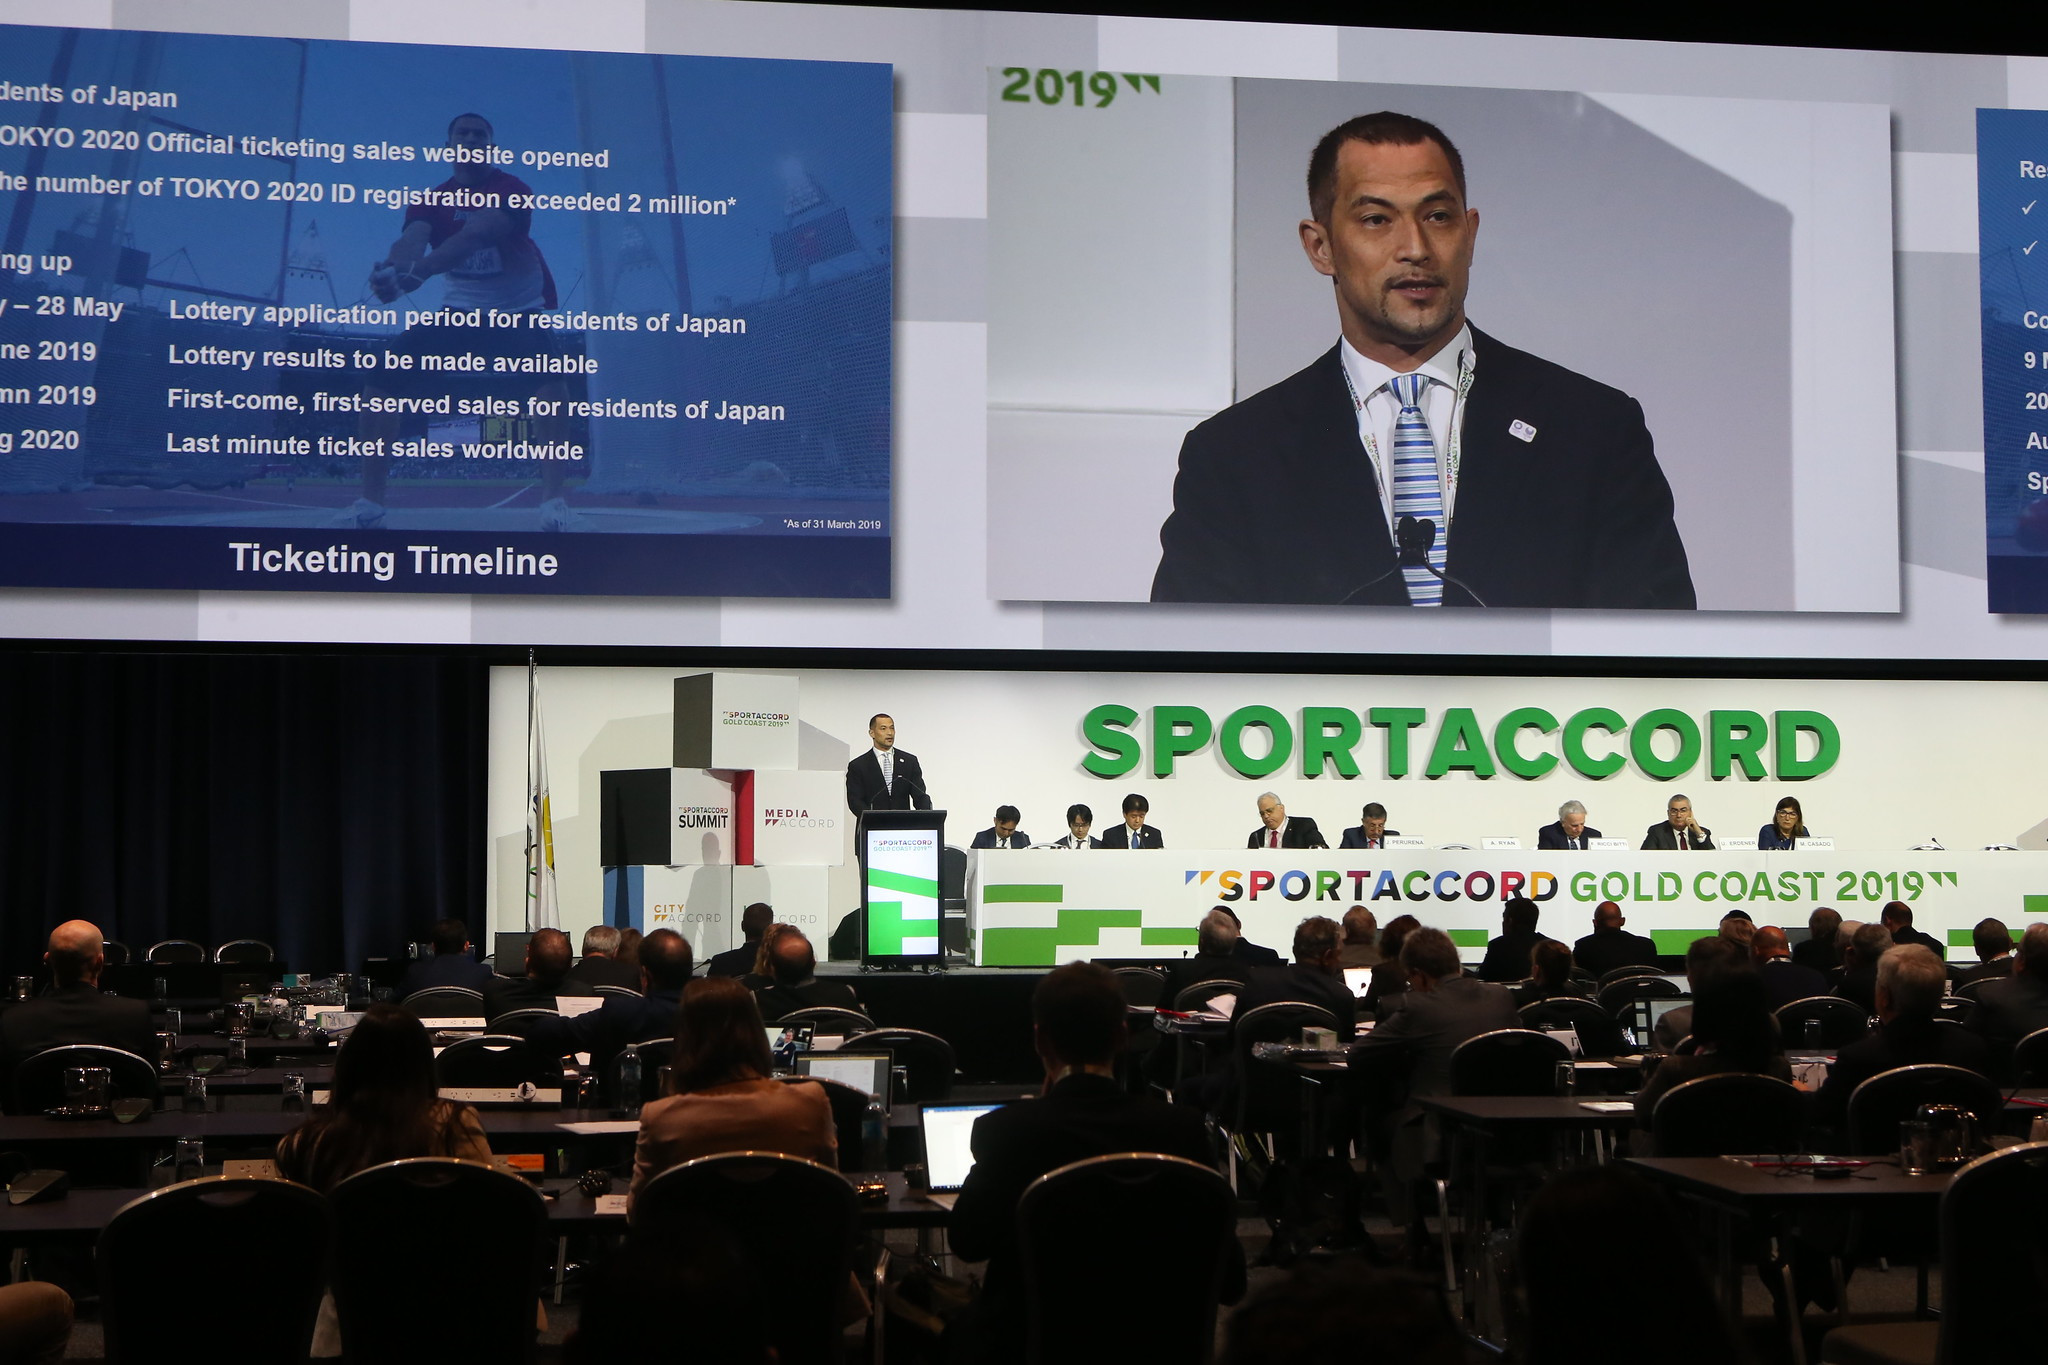 Tokyo 2020 field questions over preparations and 2026 Winter Olympic candidates present at SportAccord Summit